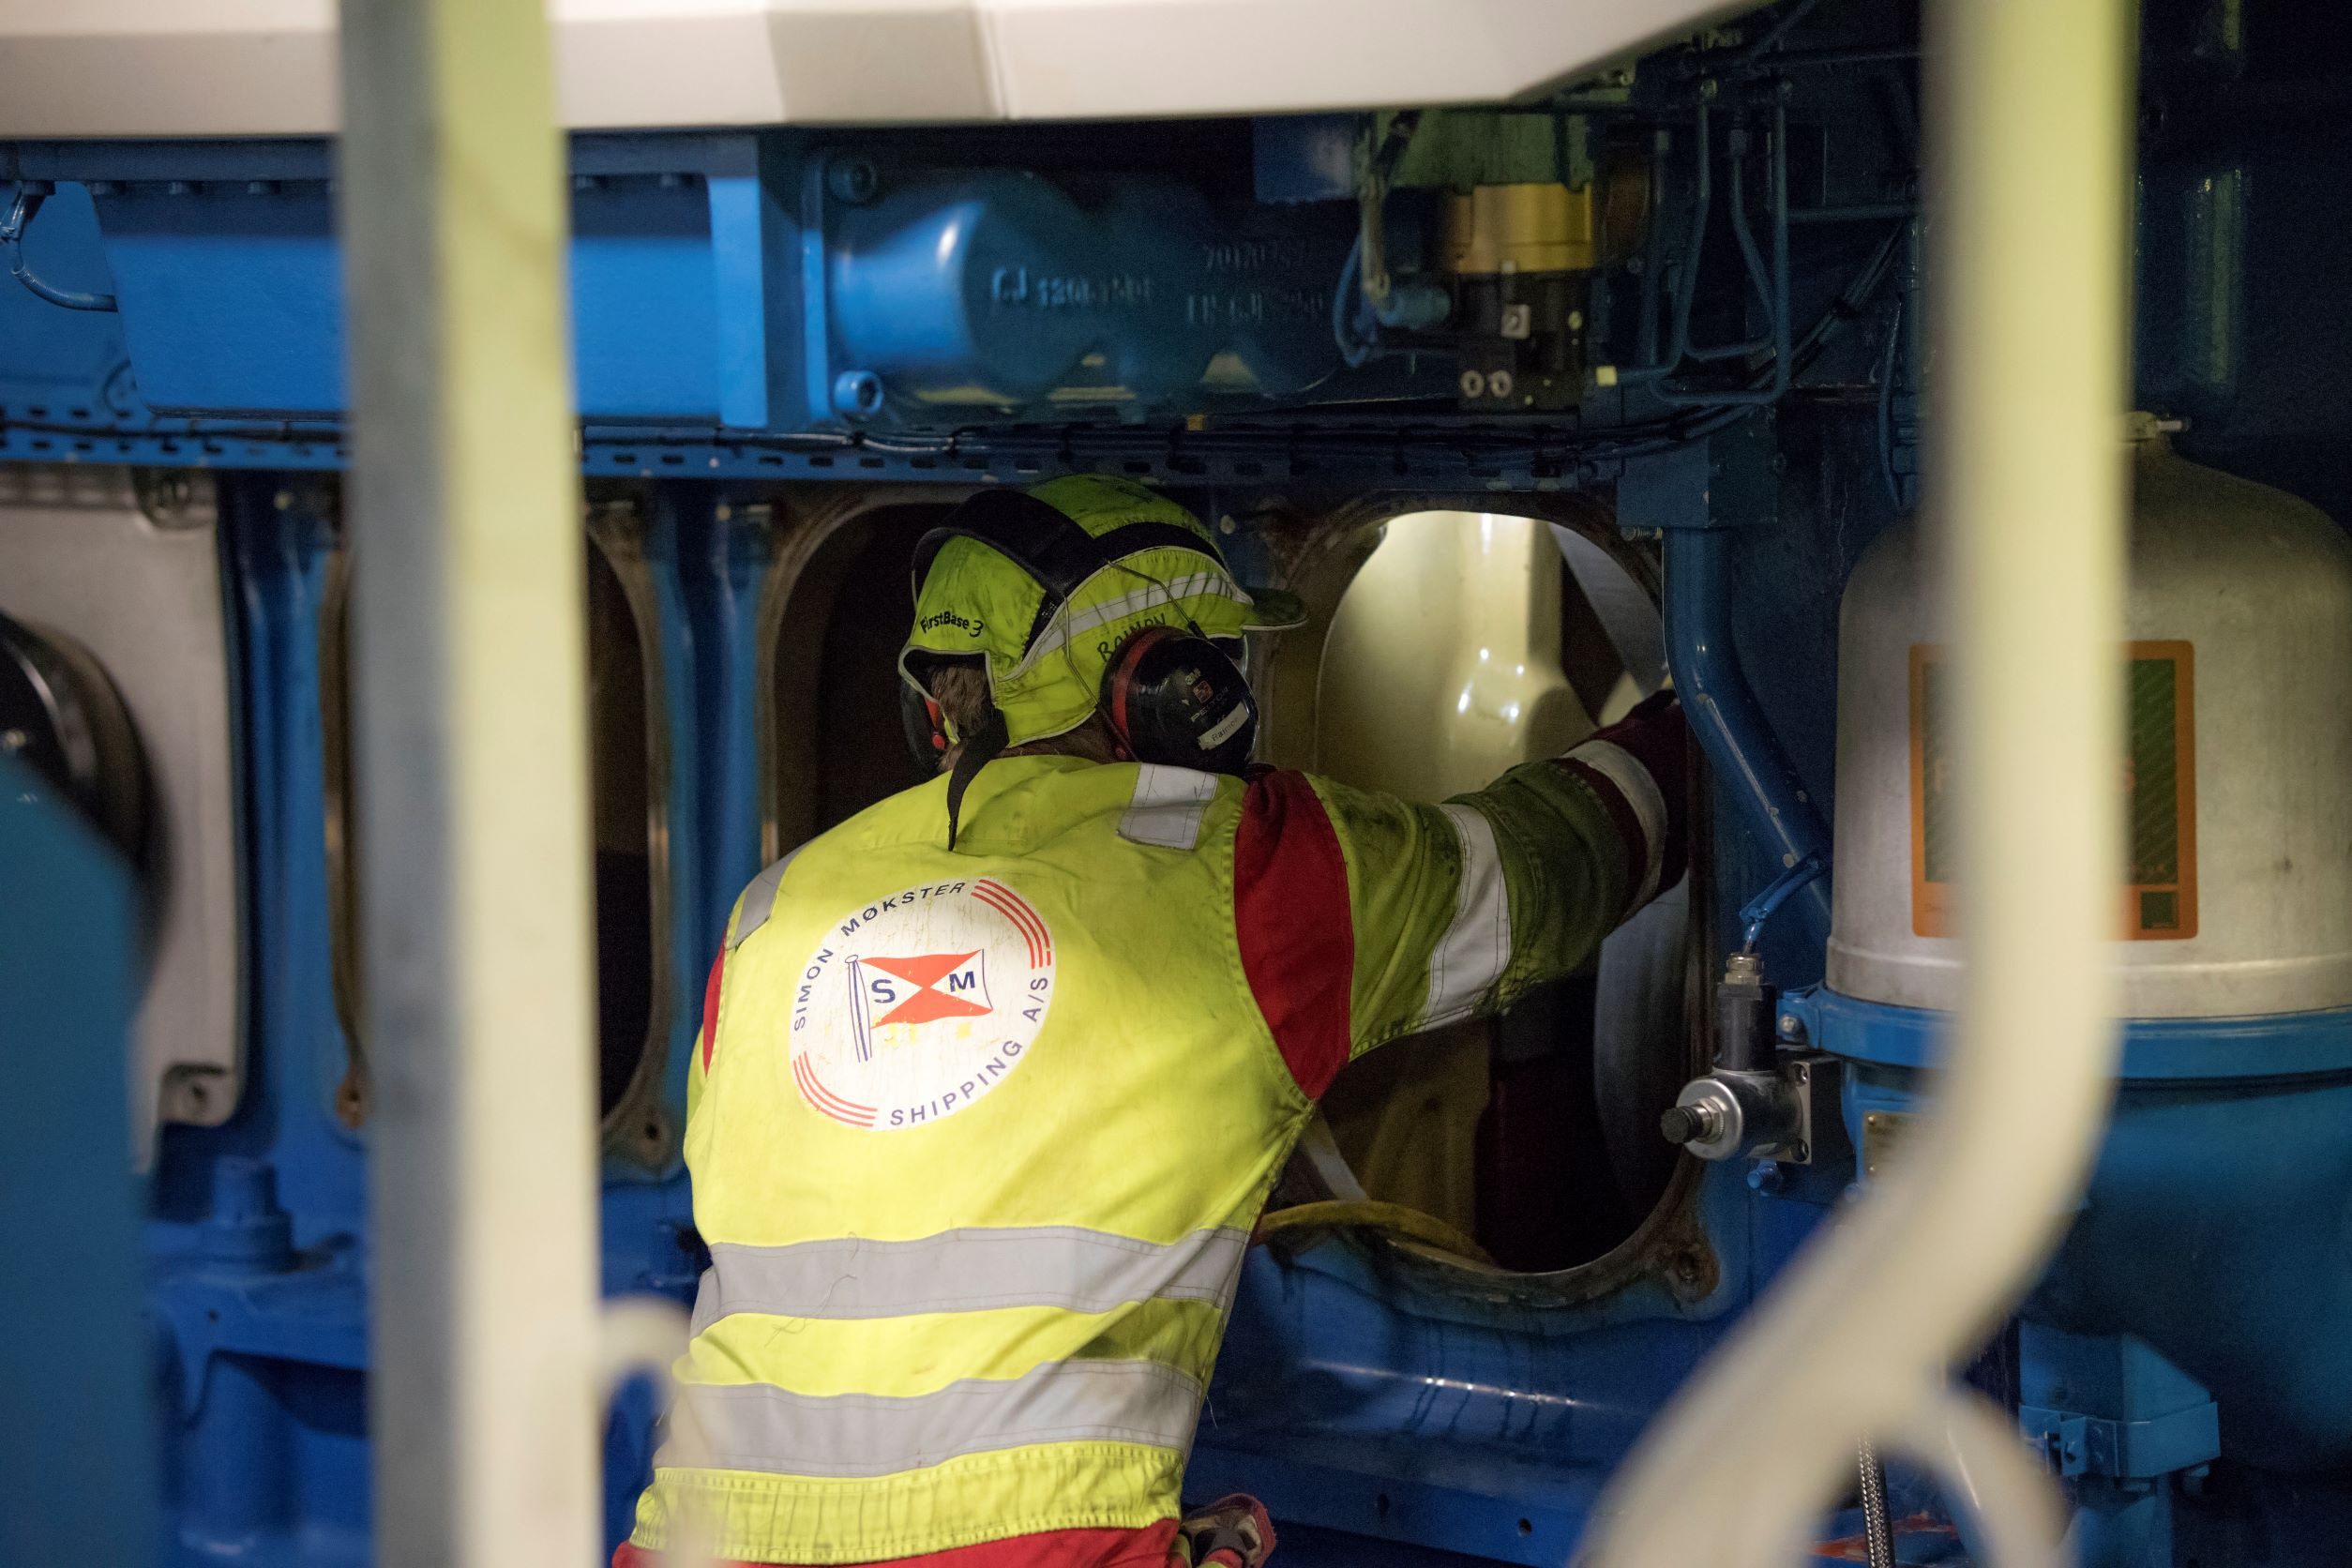 August - Maintenance in the engine room